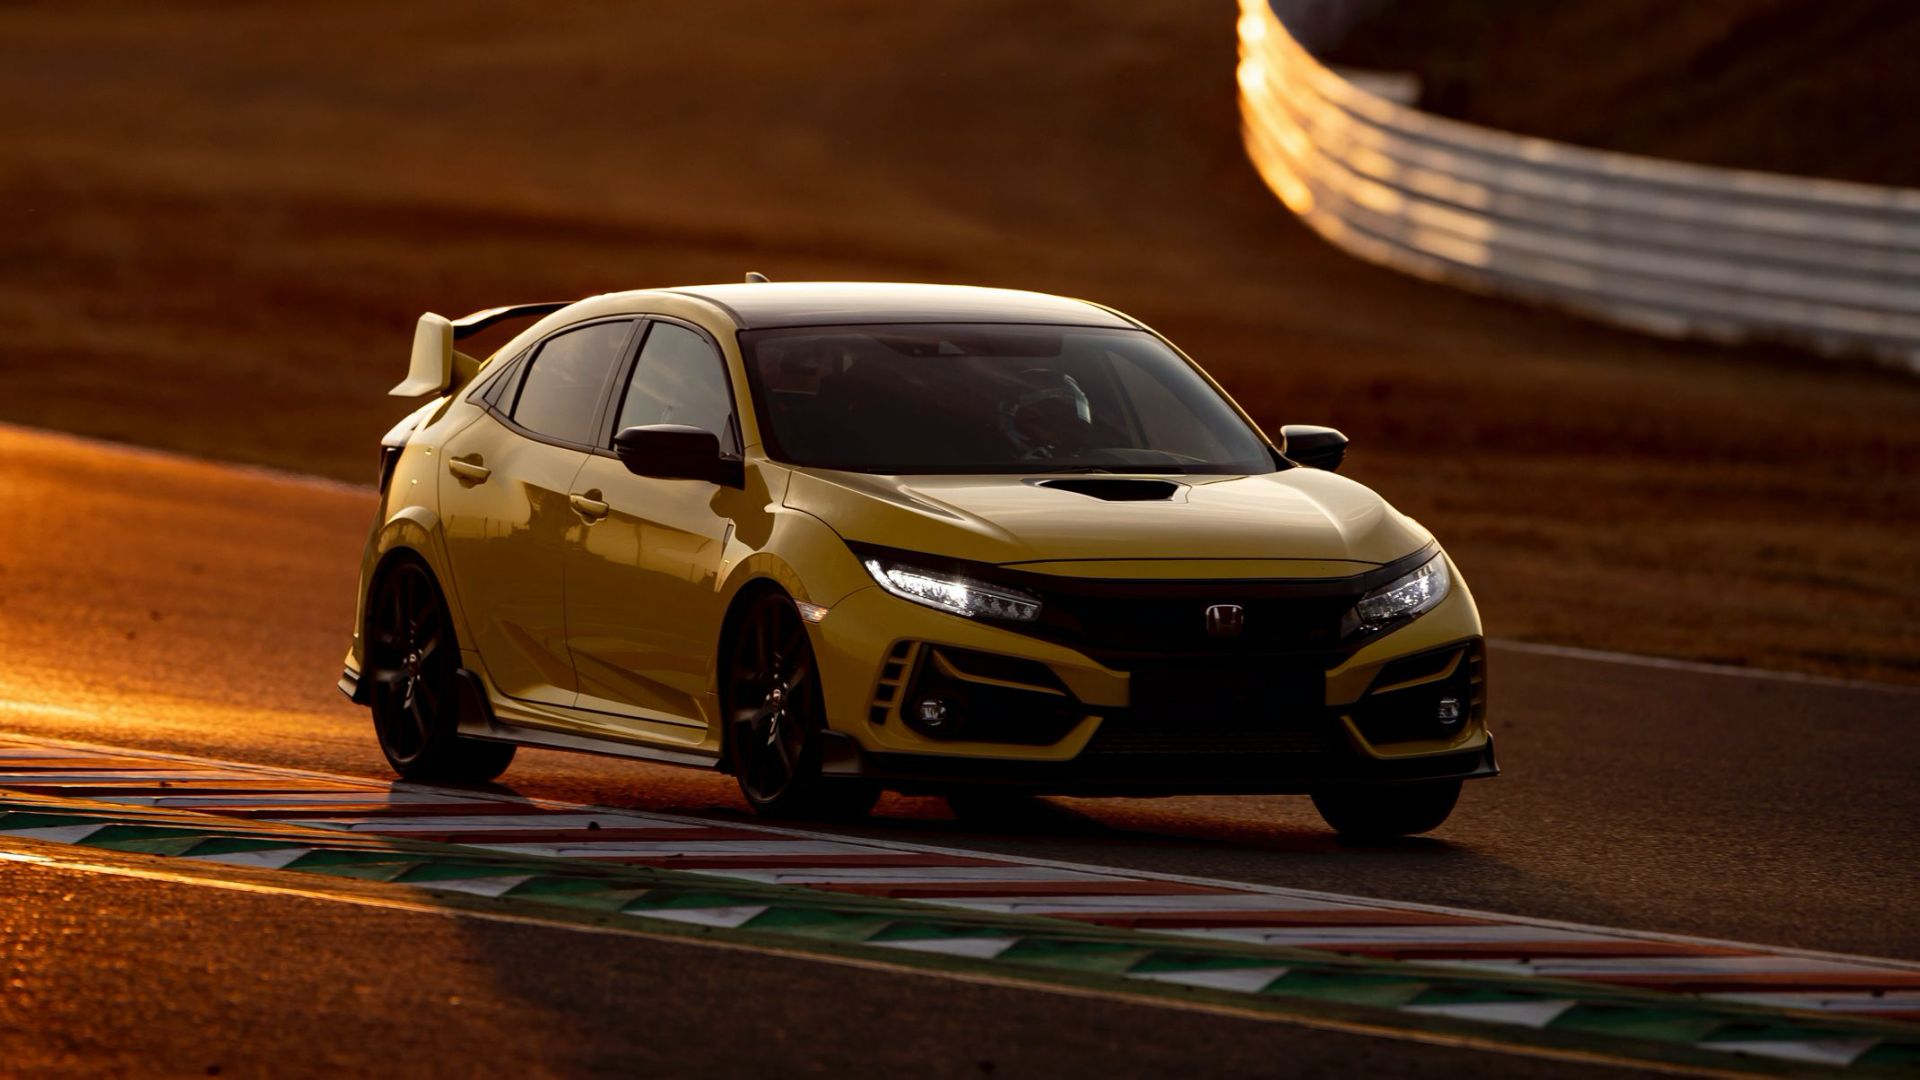 Honda-Civic-Type-R-Limited-Edition-sets-new-Suzuka-lap-record-1